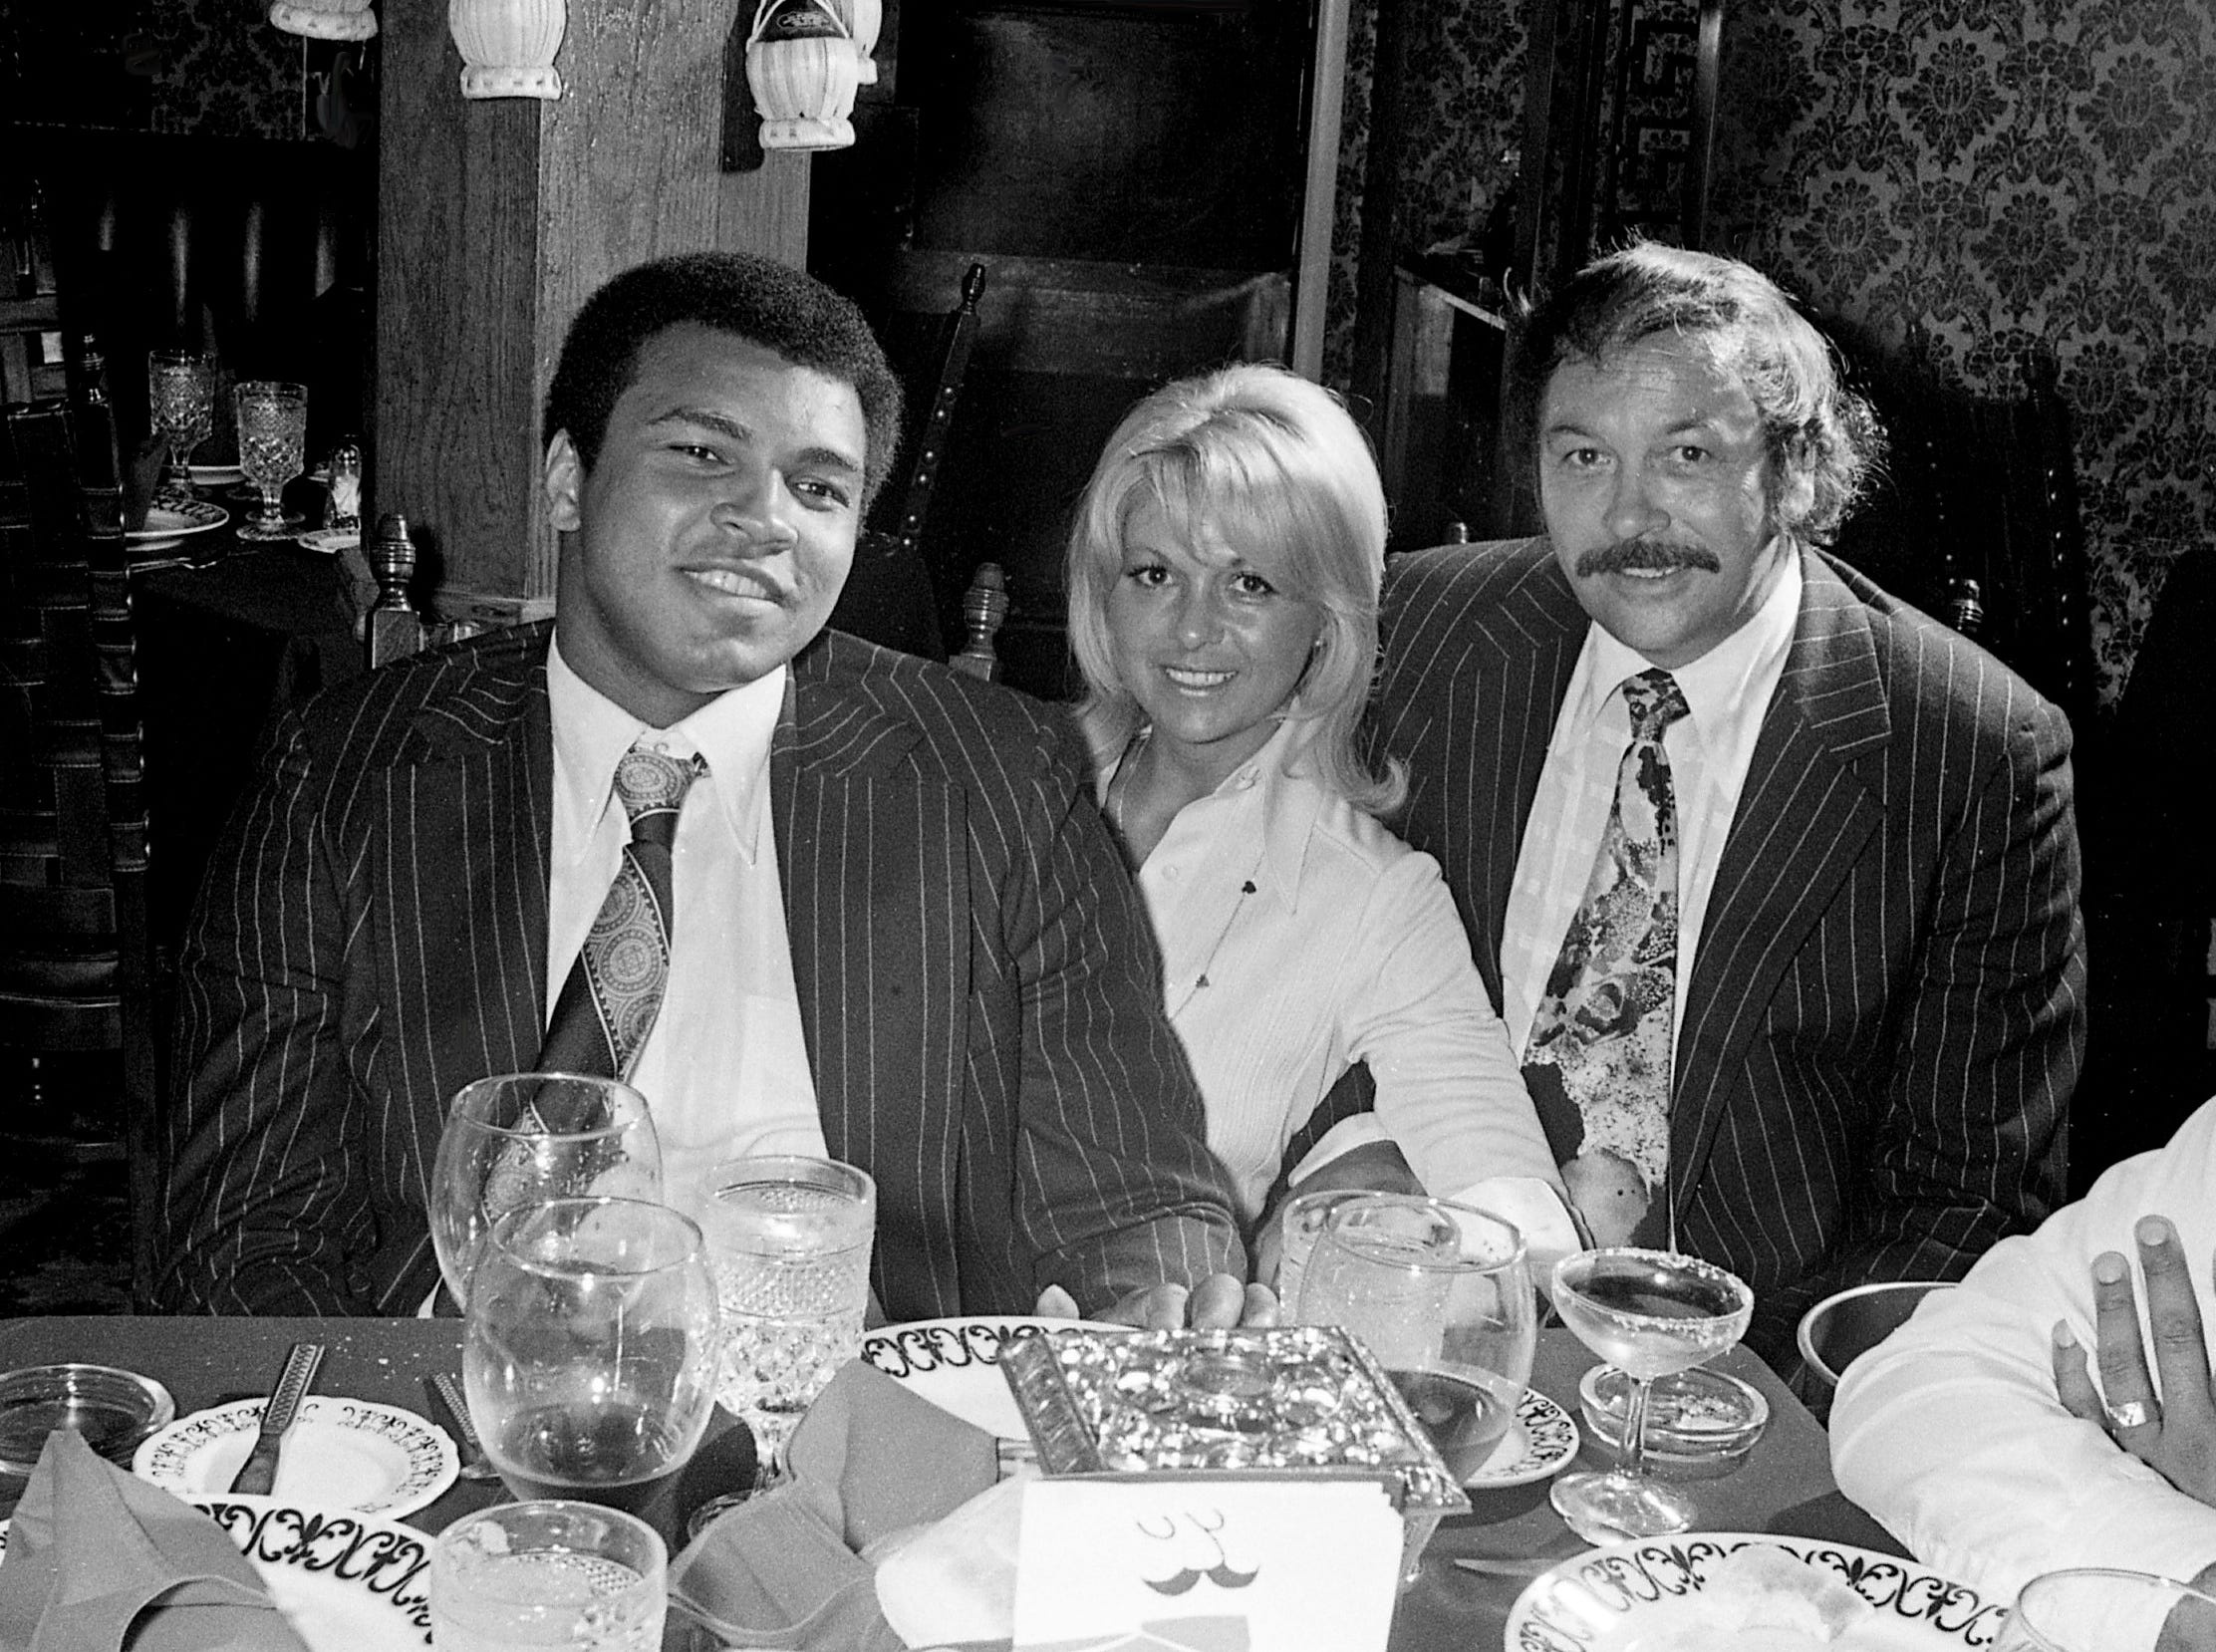 World heavyweight boxing champion Muhammad Ali, left, talks with Mario Ferrari, right, owner of Mario's Restaurant, during dinner April 23, 1975. Ali was in Nashville for a taping of a special musical production featuring Fisk University.